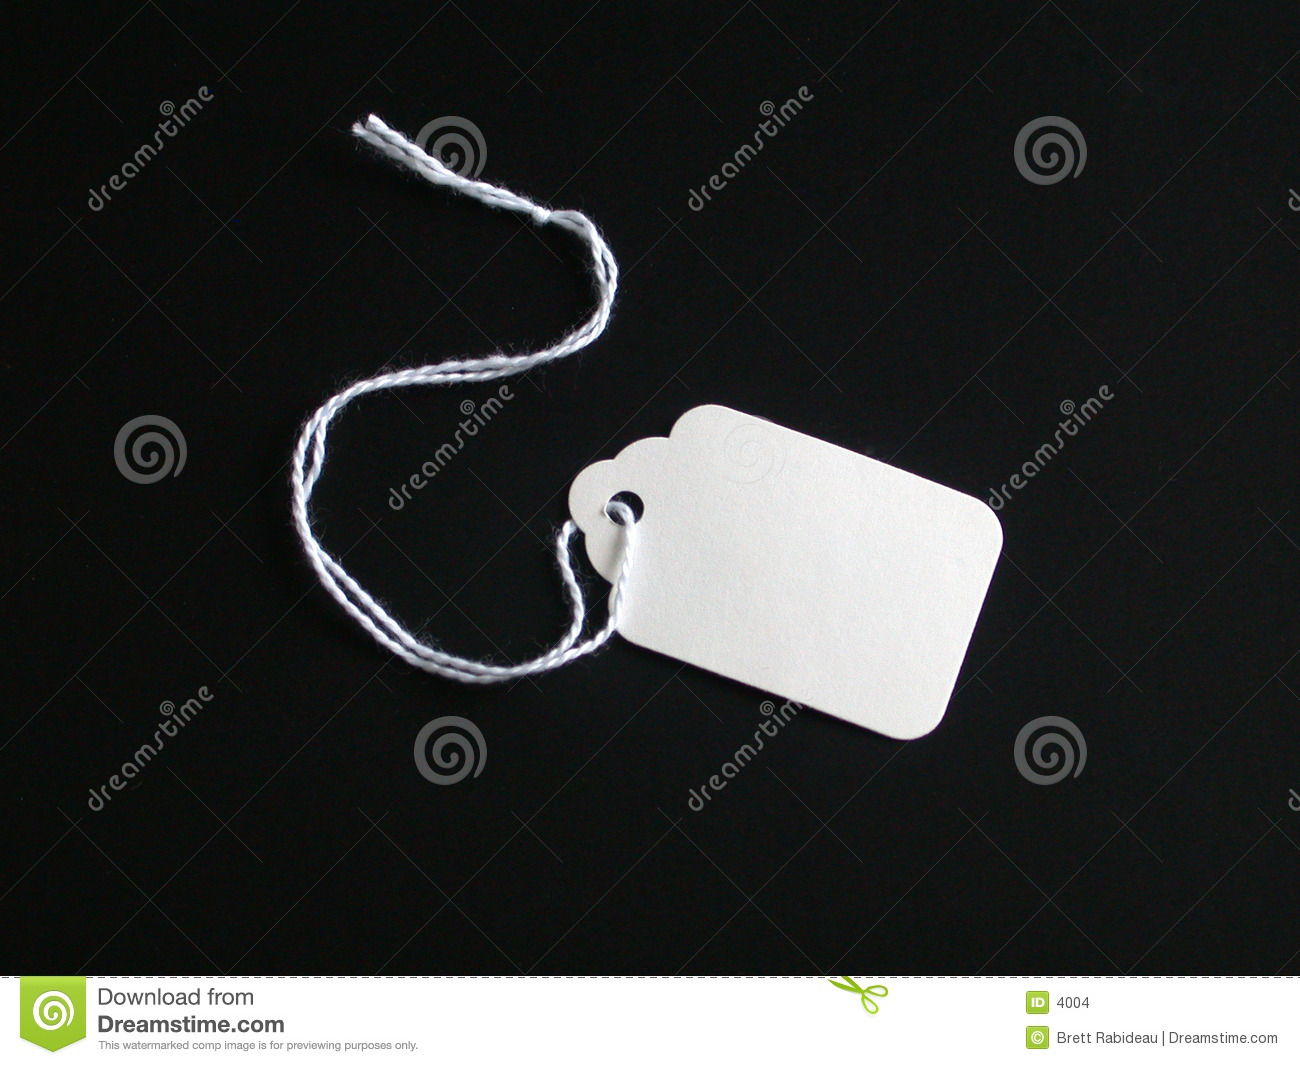 White tag on a black background